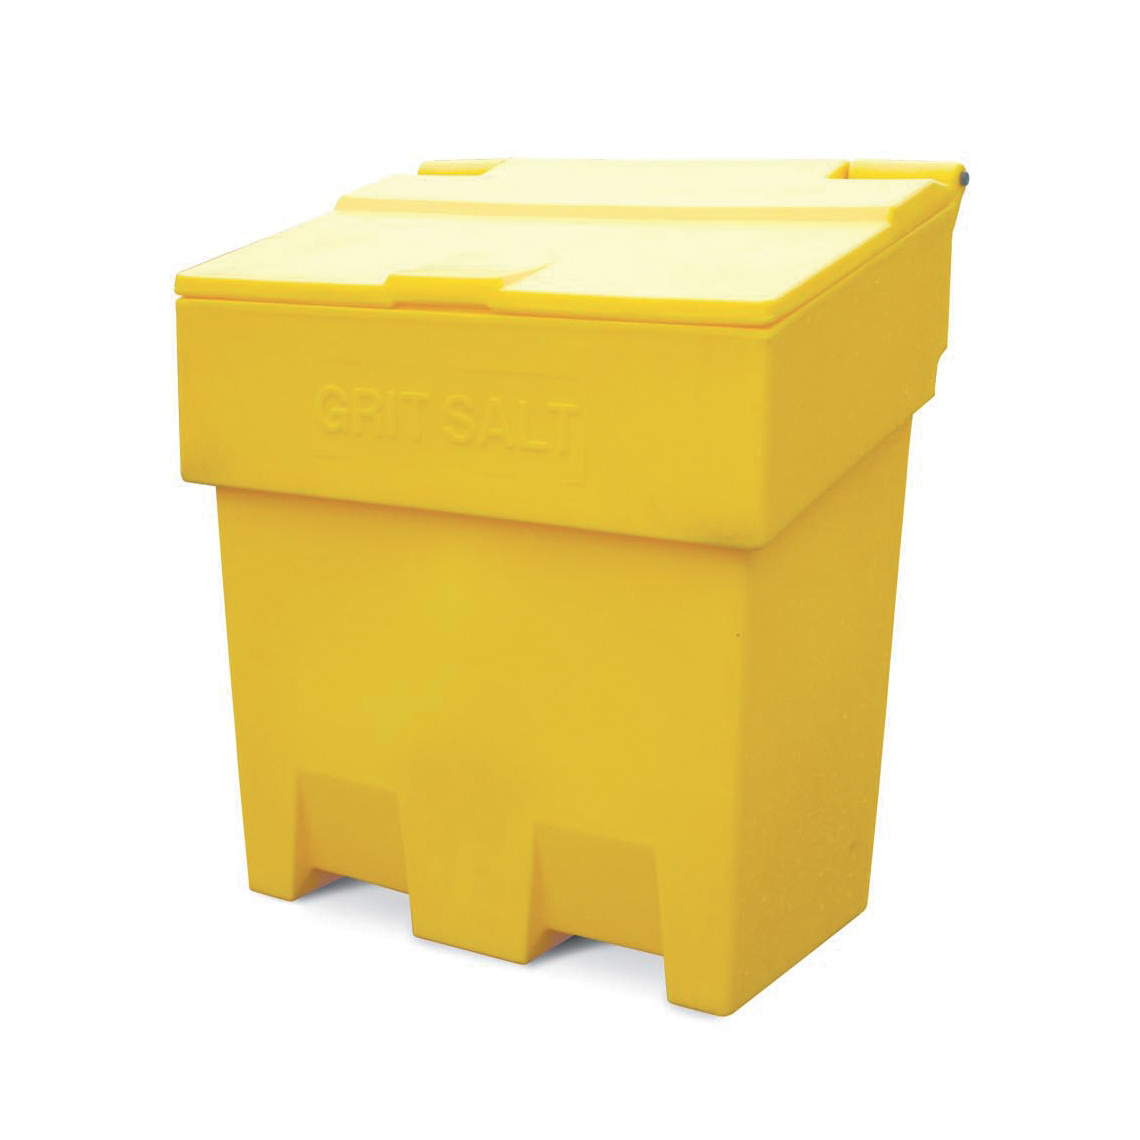 Grit Bins & Accessories Bentley Grit and Salt Bin Polyethylene Capacity 240kg Weight 14kg Ref SPC/GRIT200